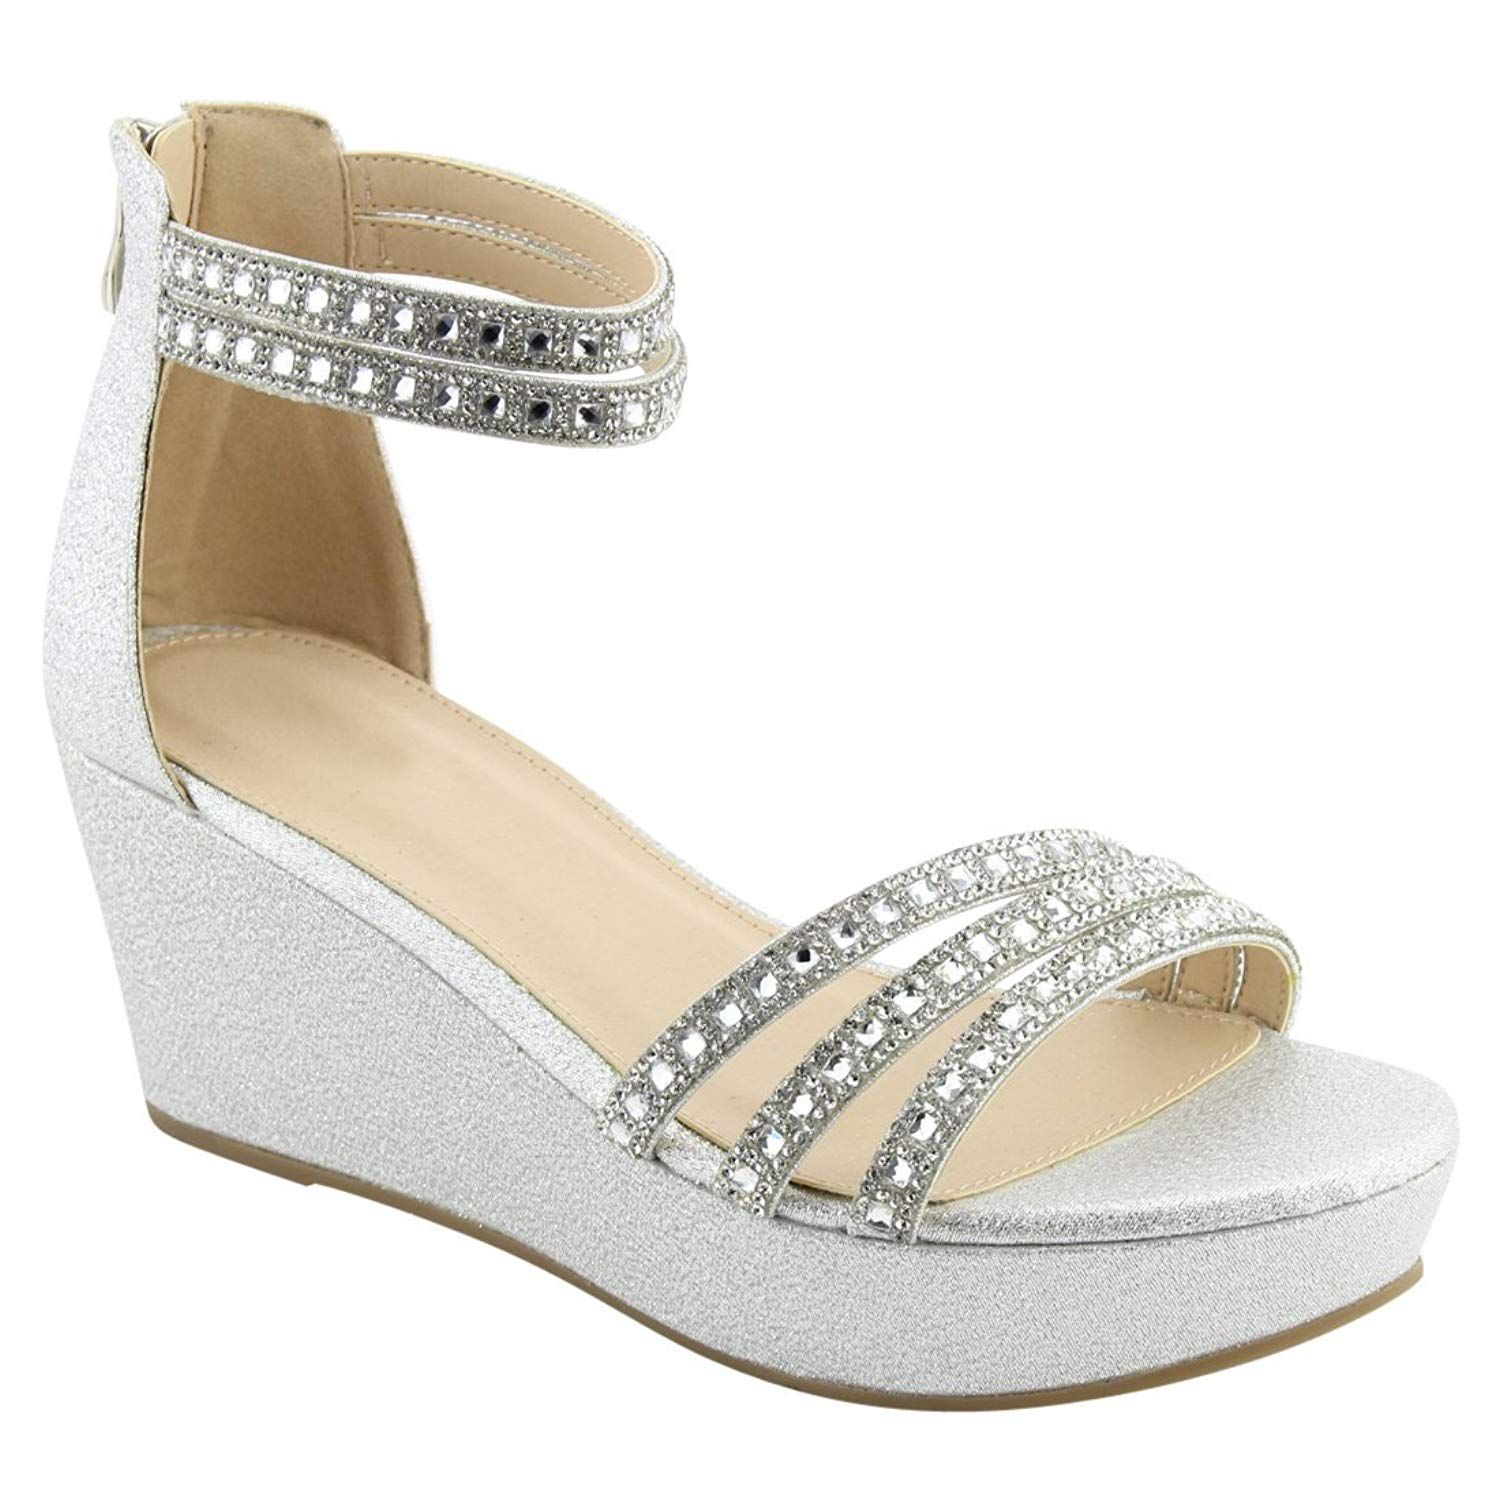 ace81814cc8 BESTON FQ91 Women s Glitter Ankle Strap Wrapped Heel Wedge Dress Sandal.  Spring into a new